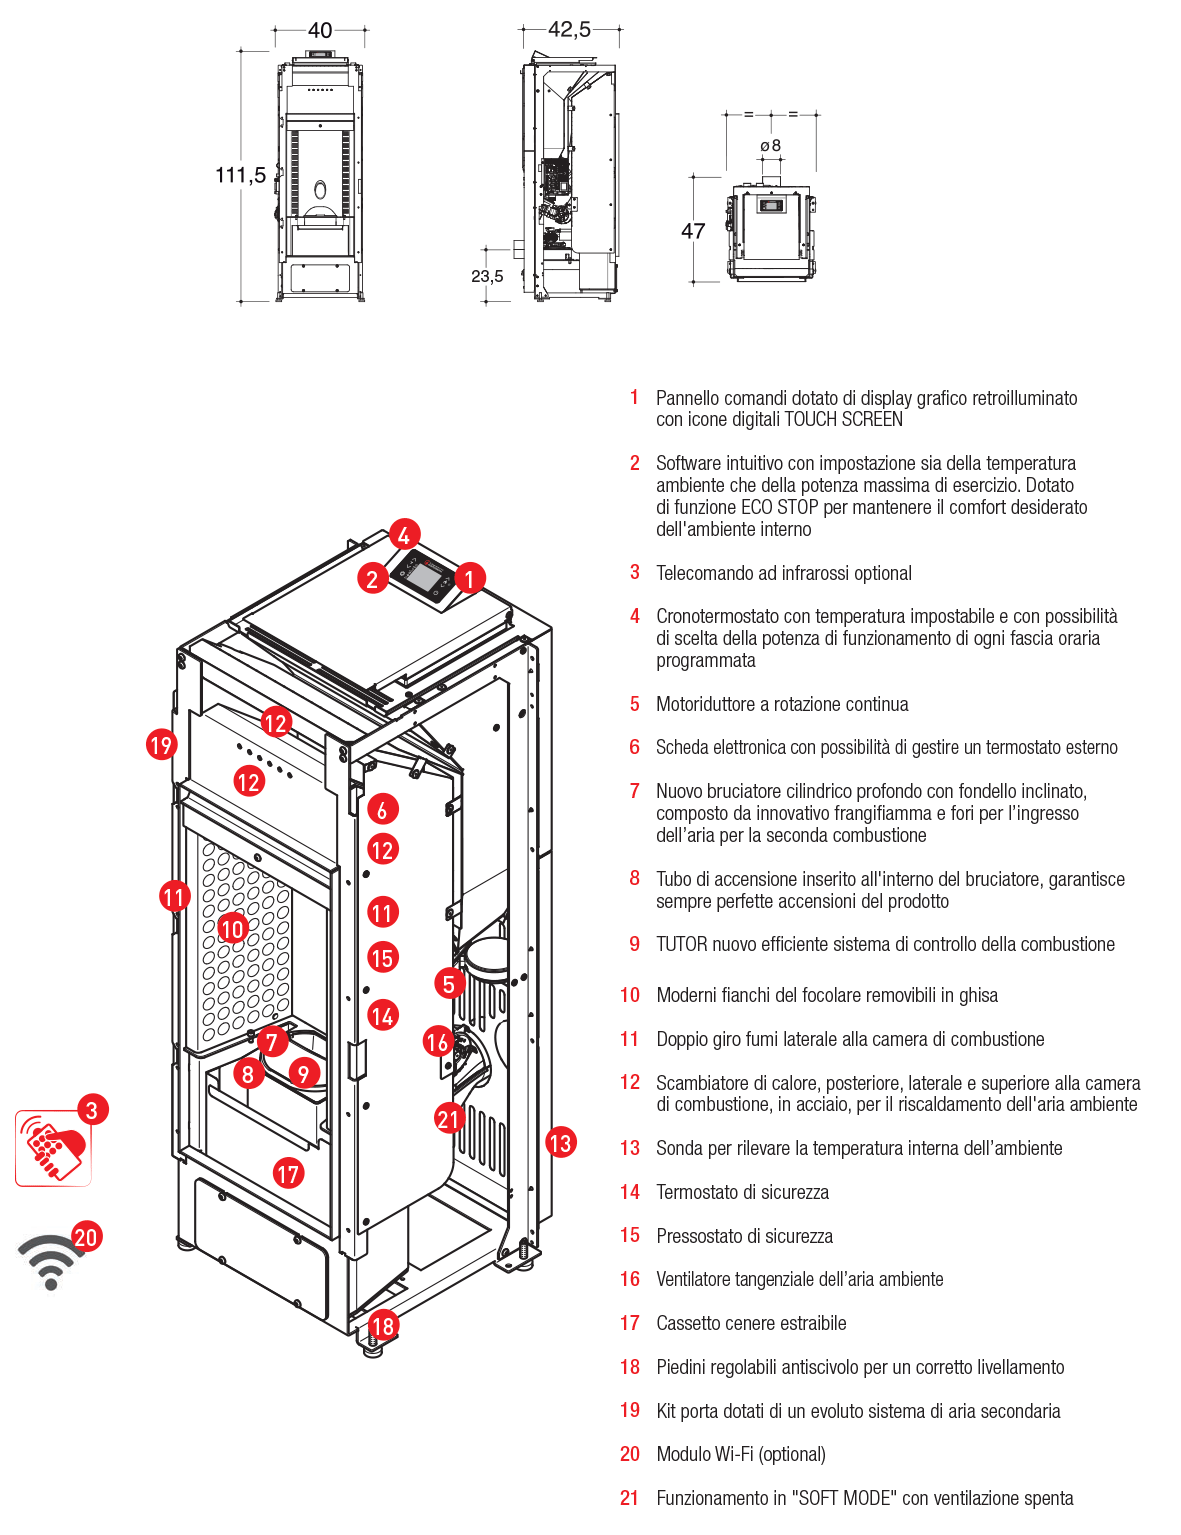 pellet stove with a system of forced convection